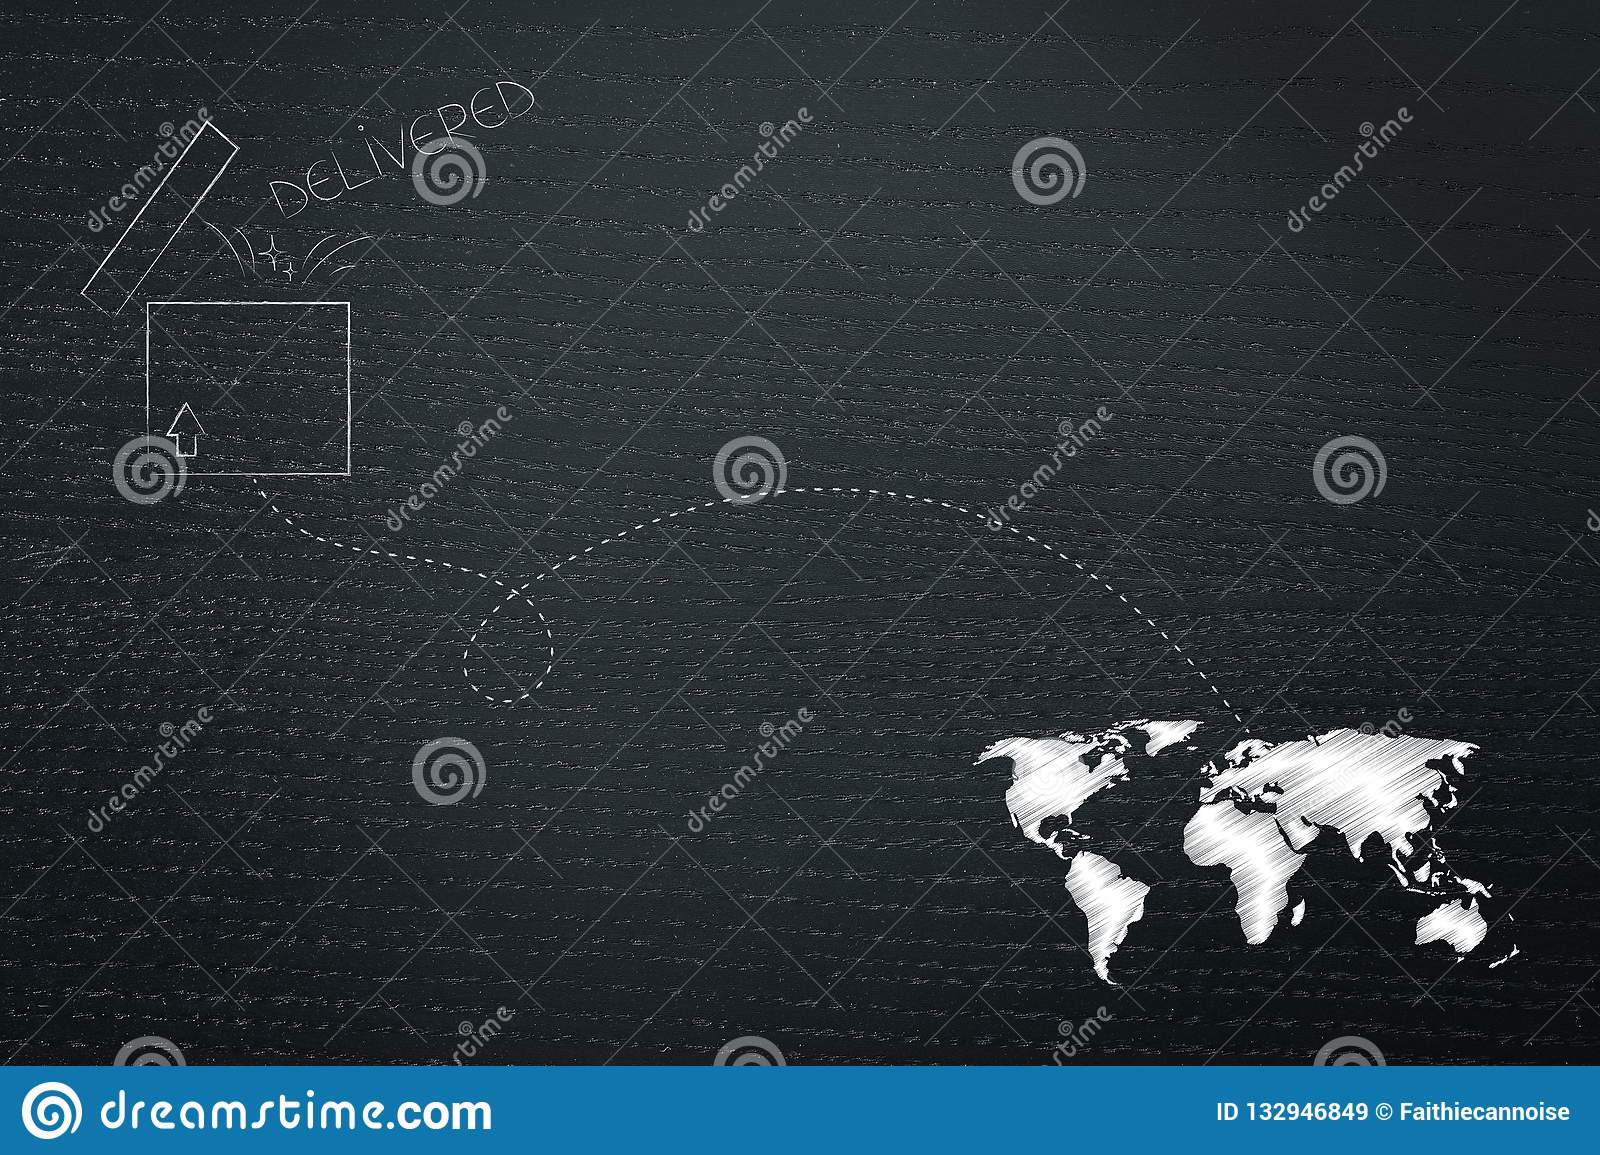 Open Parcel With Dashed Line Route To Destination On World